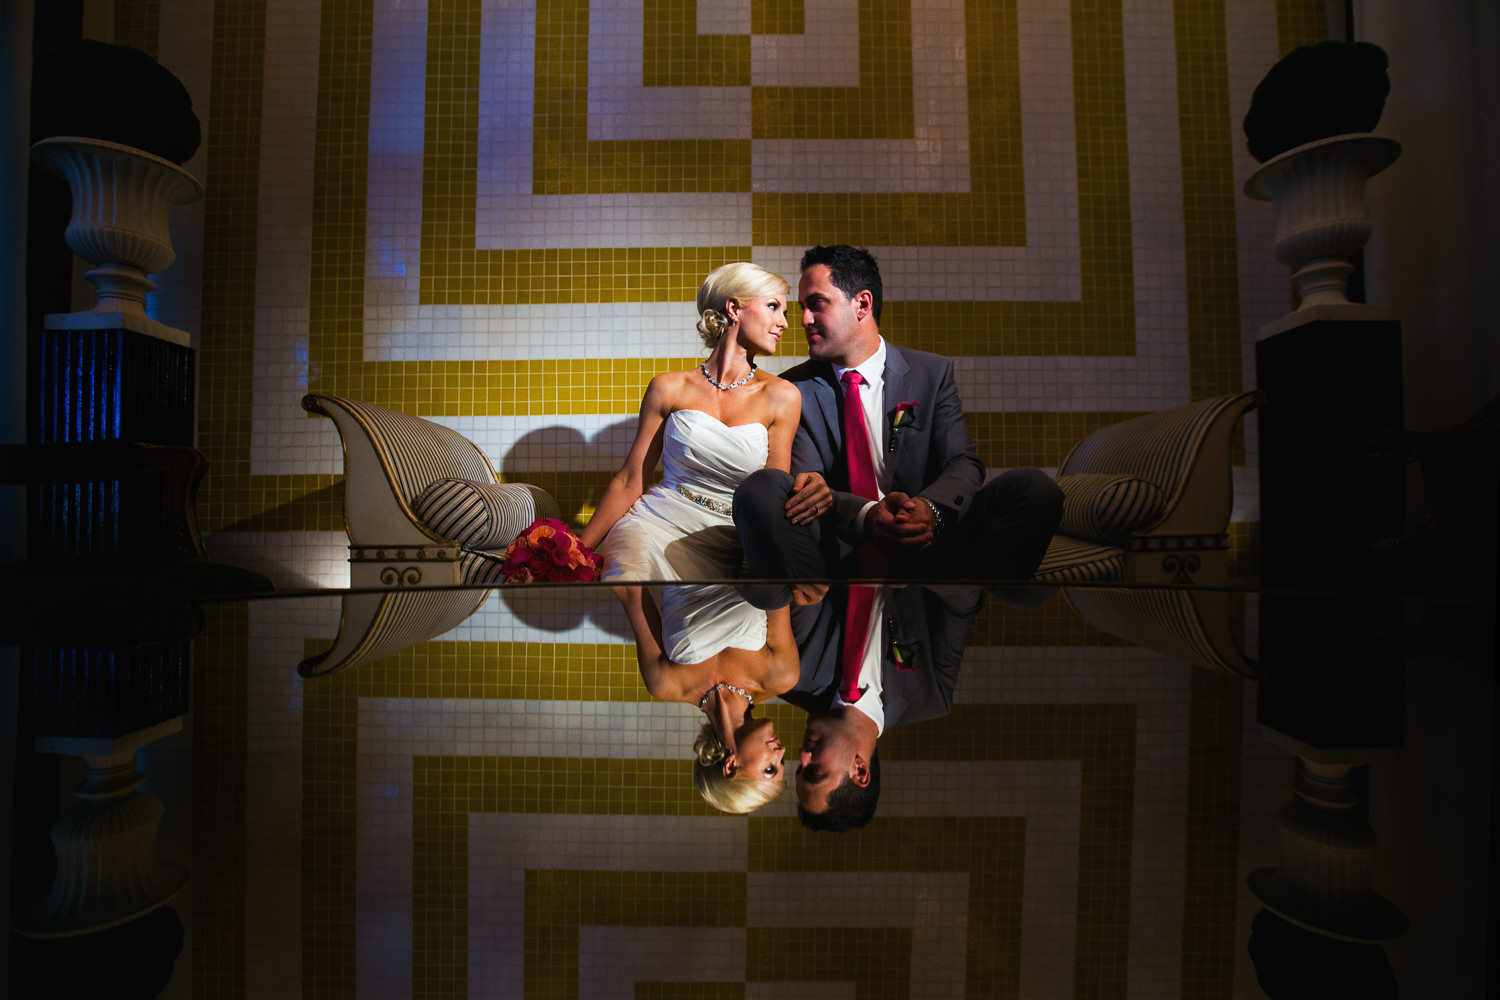 Avalon Palm Springs Photographer - Great photo of newly weds on couch